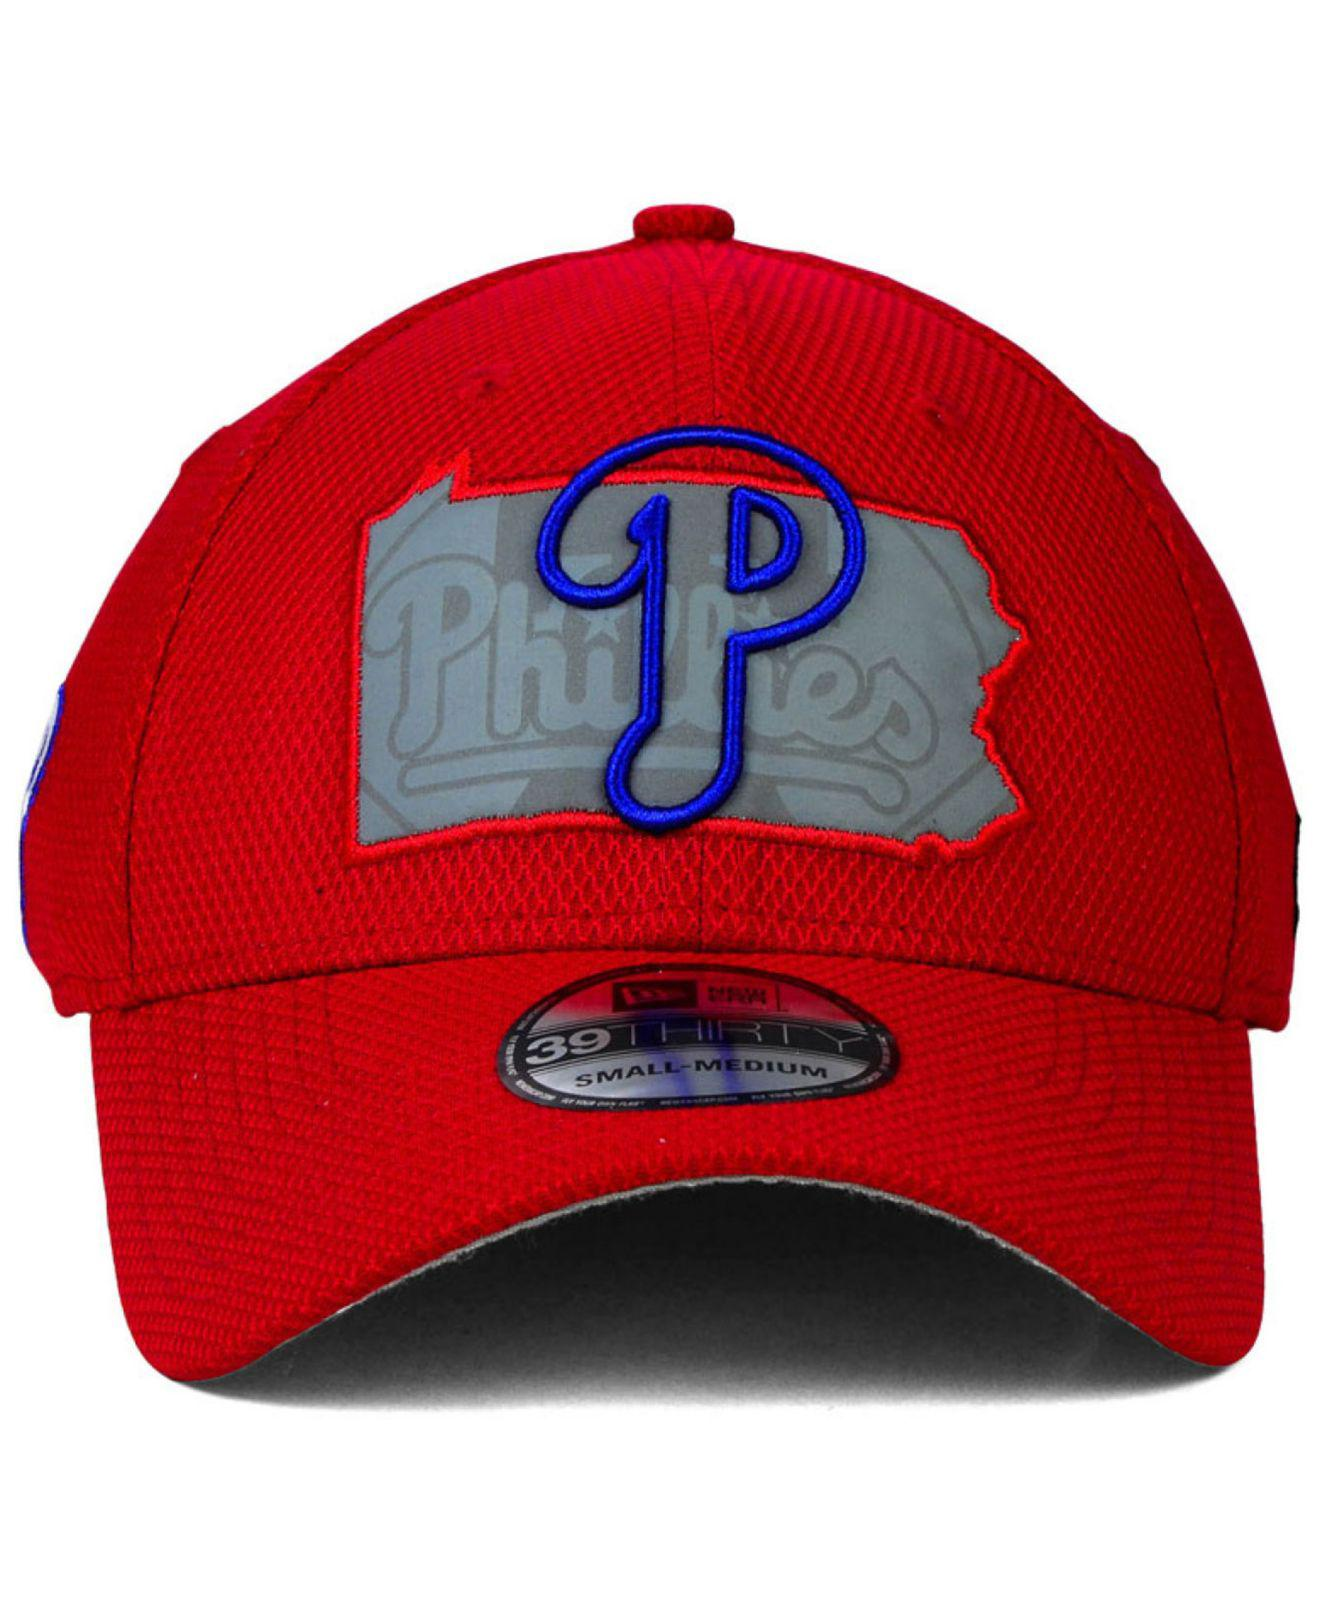 Lyst - Ktz Philadelphia Phillies State Flective 39thirty Cap in Red for Men c4d74e0a2d26